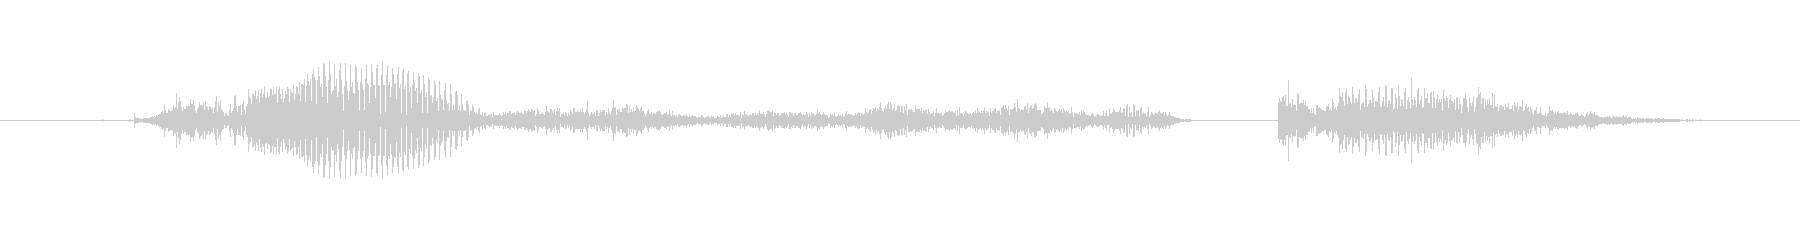 Then immediately (female)'s unreproduced waveform